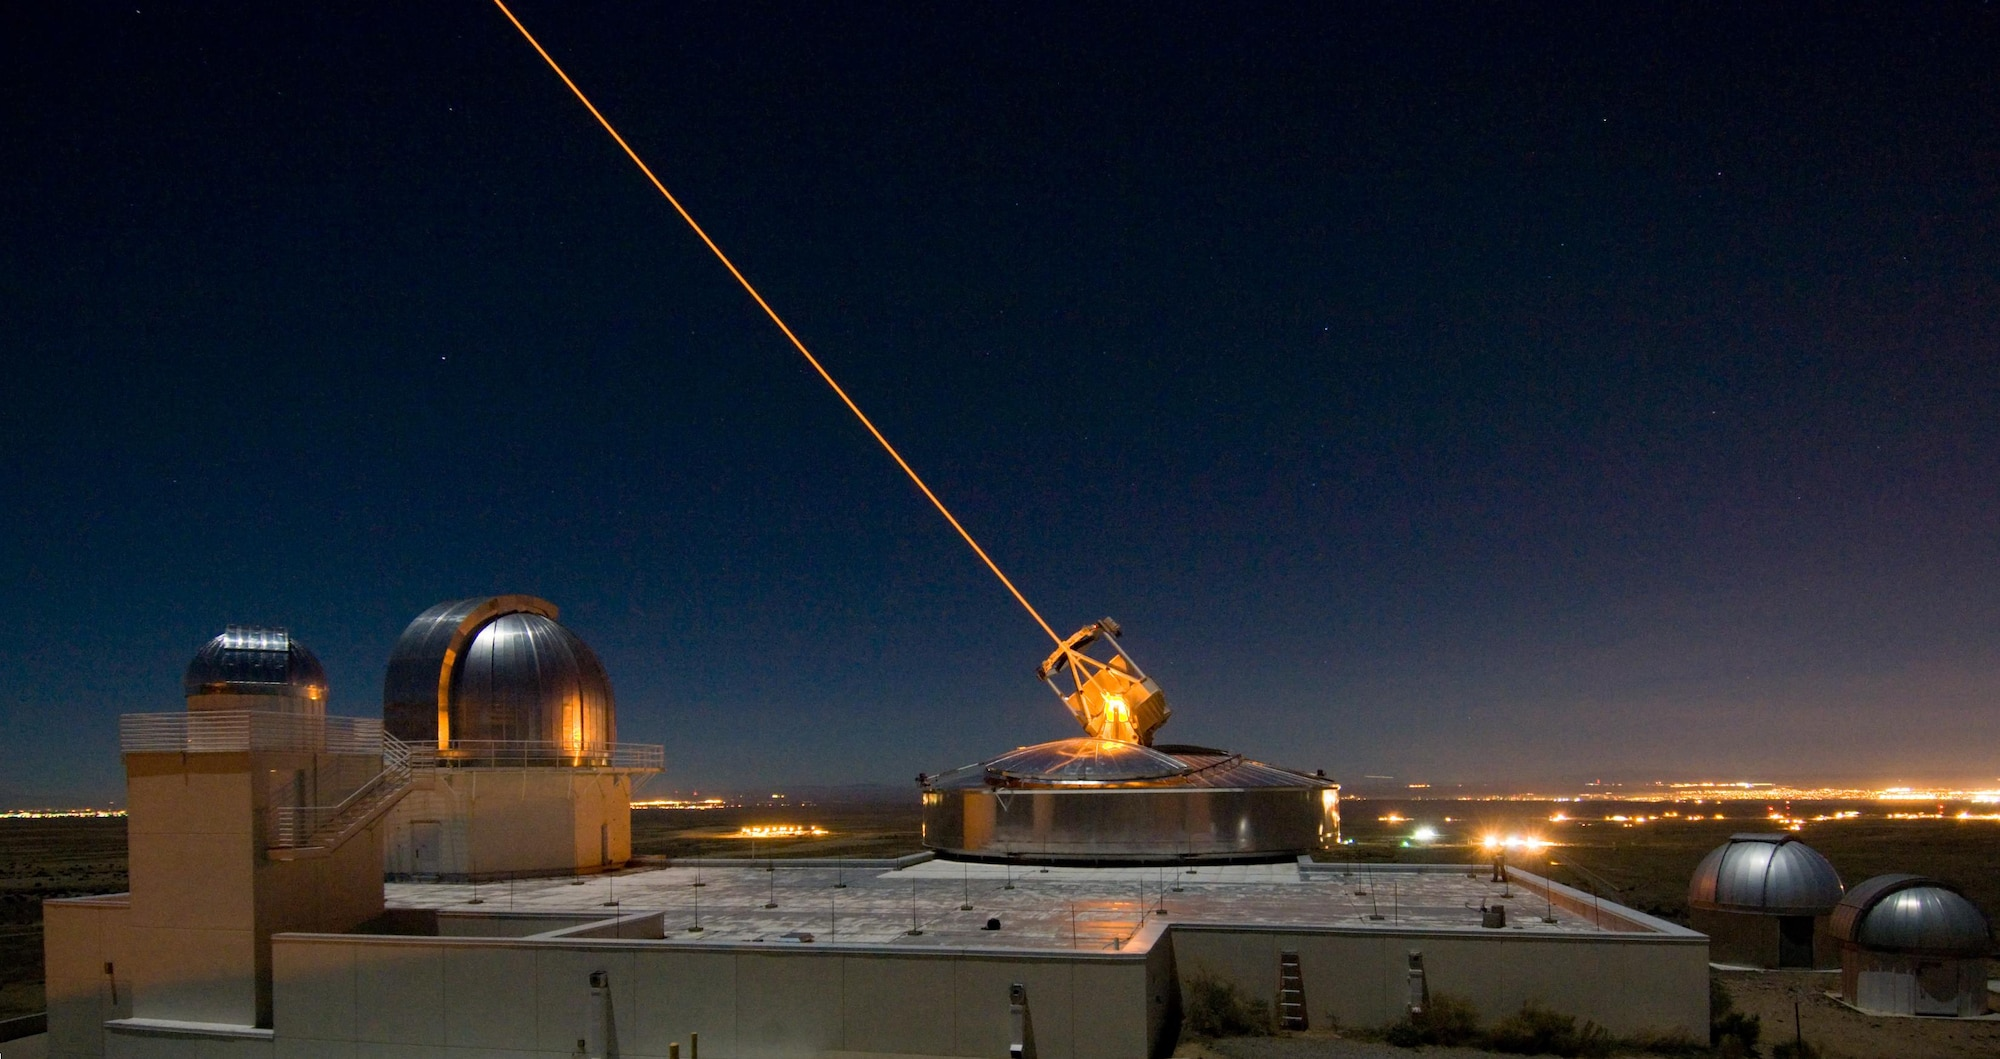 The Sodium Guidestar at the Air Force Research Laboratory's Starfire Optical Range resides on a 6,240 foot hilltop at Kirtland Air Force Base, N.M. Researchers with AFRL's Directed Energy Directorate use the Guidestar laser for real-time, high-fidelity tracking and imaging of satellites too faint for conventional adaptive optical imaging systems. Directed-Energy and Electro-Optics for Space Superiority (DEOSS) is one of 26 ground-breaking AFRL technologies which will be demonstrated during DOD Lab Day, May 14, 2015, at the Pentagon's courtyard in Washington, D.C. (U.S. Air Force photo)